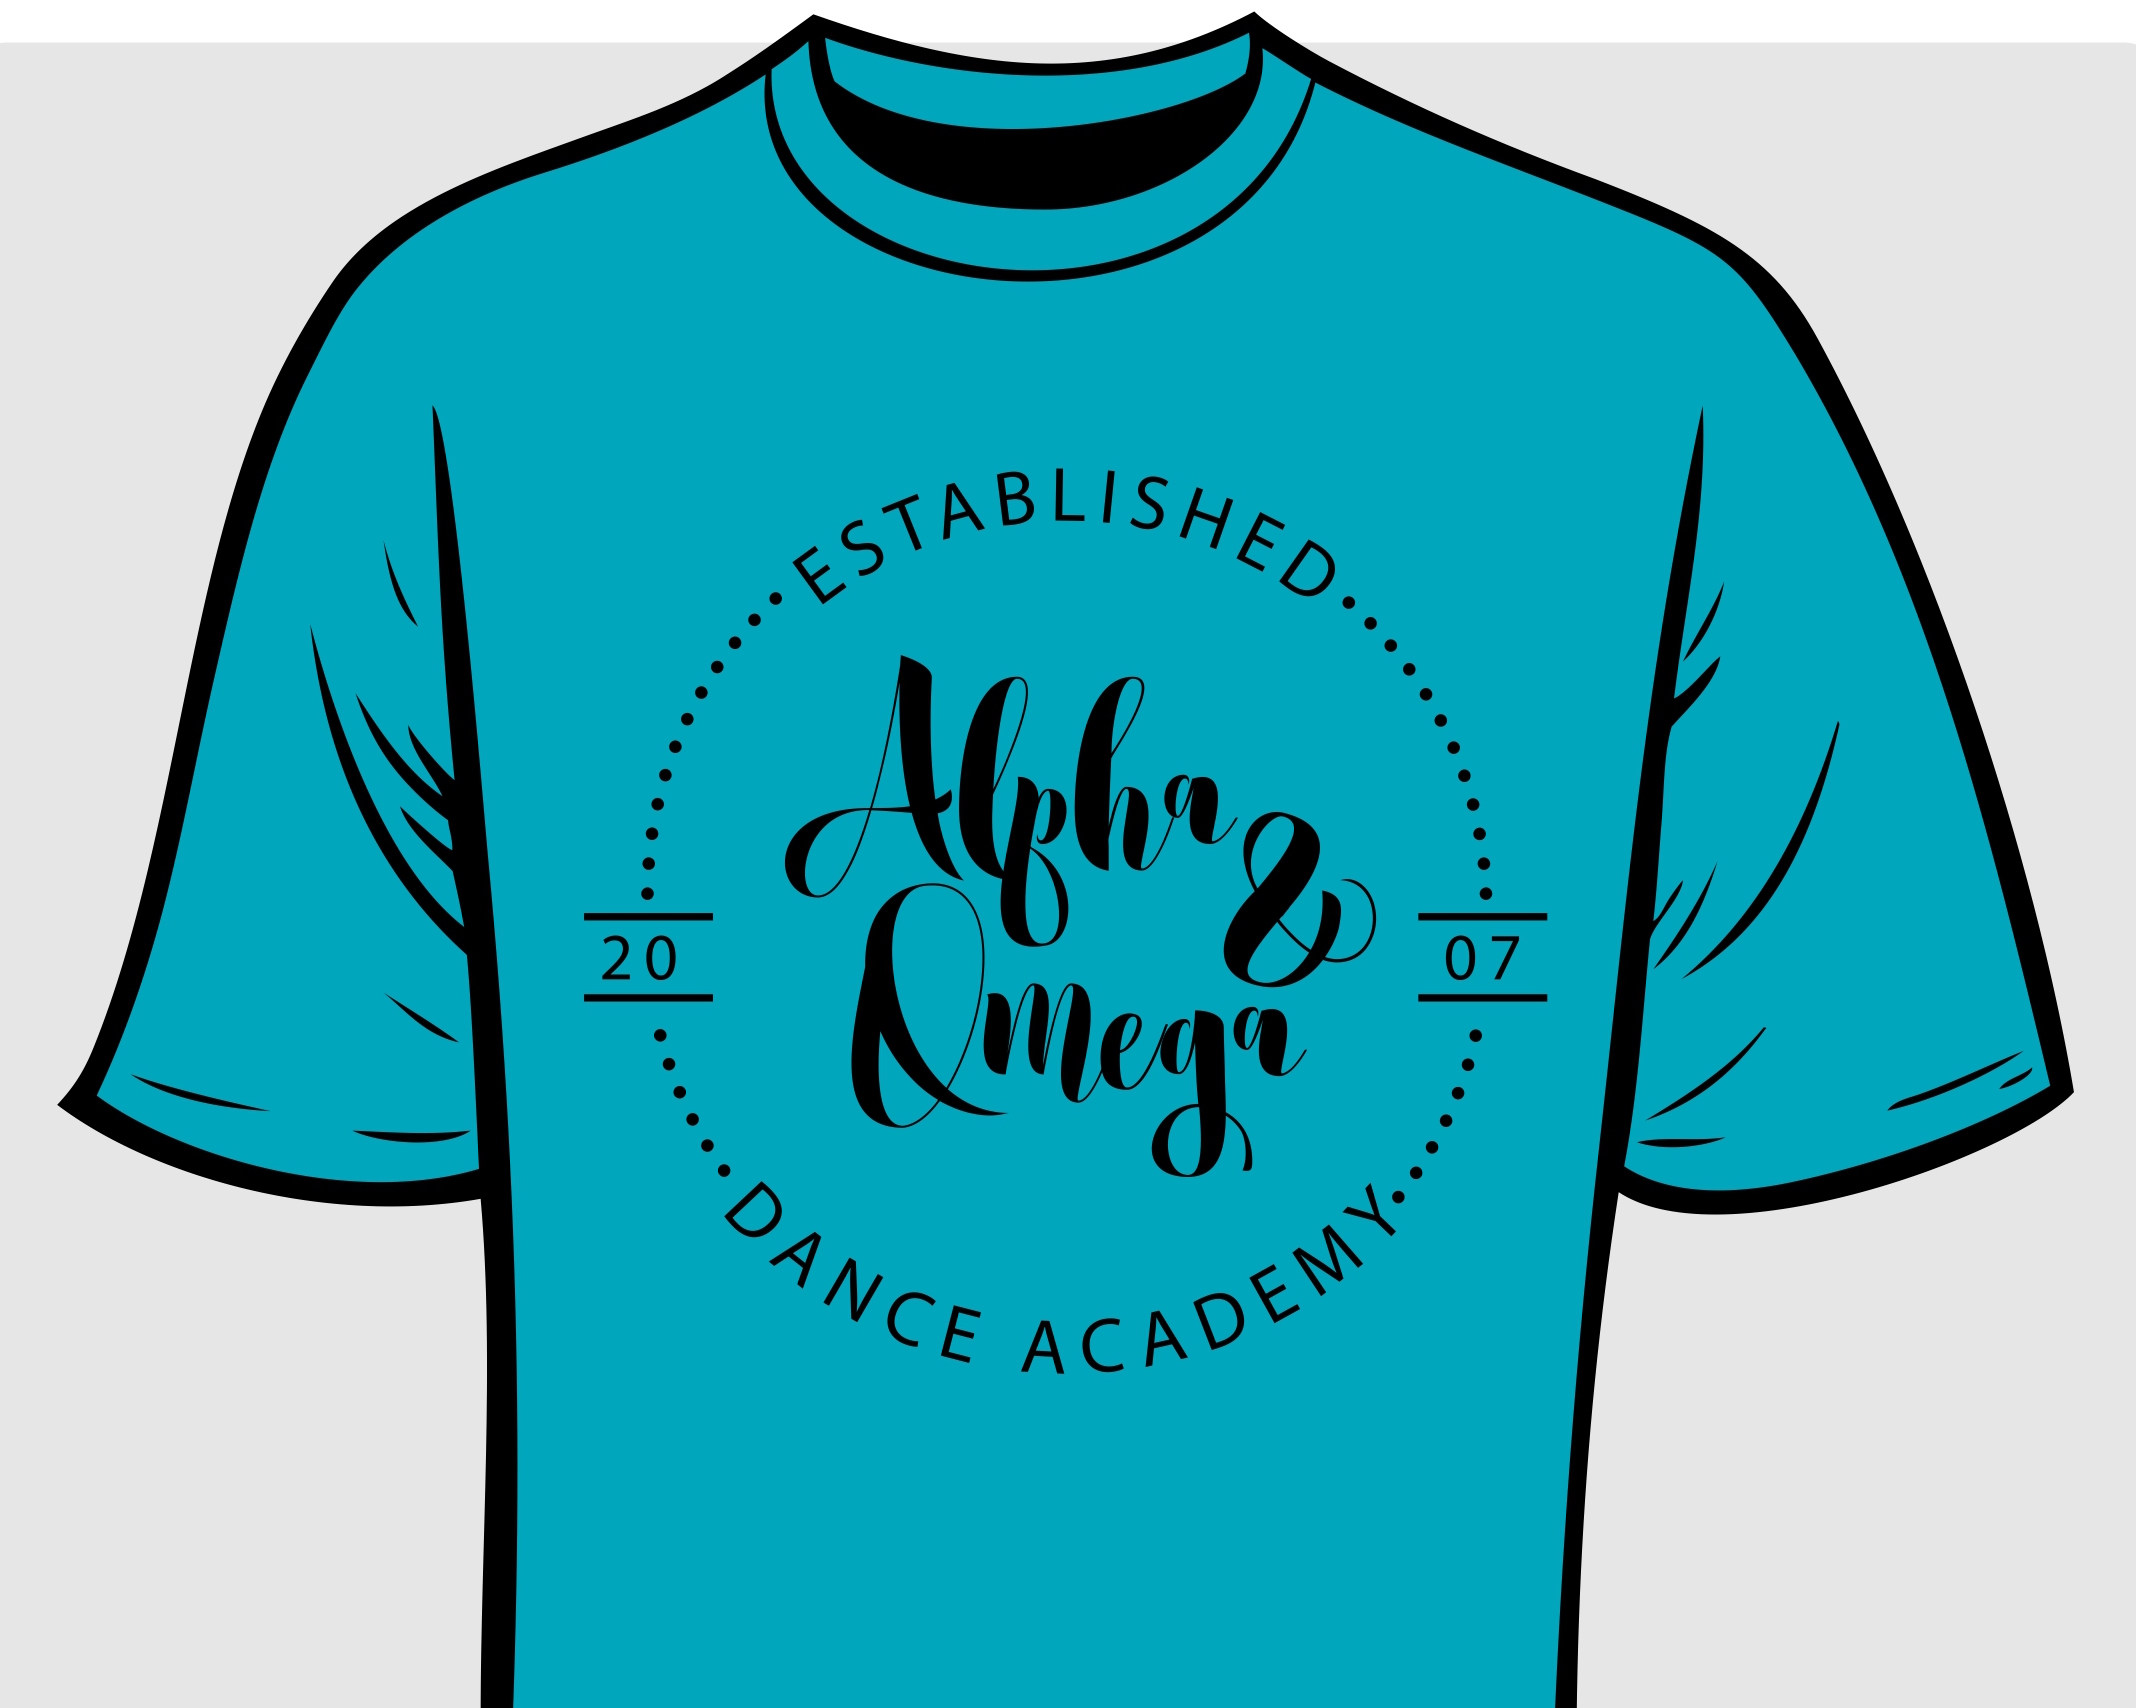 Adult Blue - $15  Sizes: XS - 3XL (2-3XL cost $2 extra)